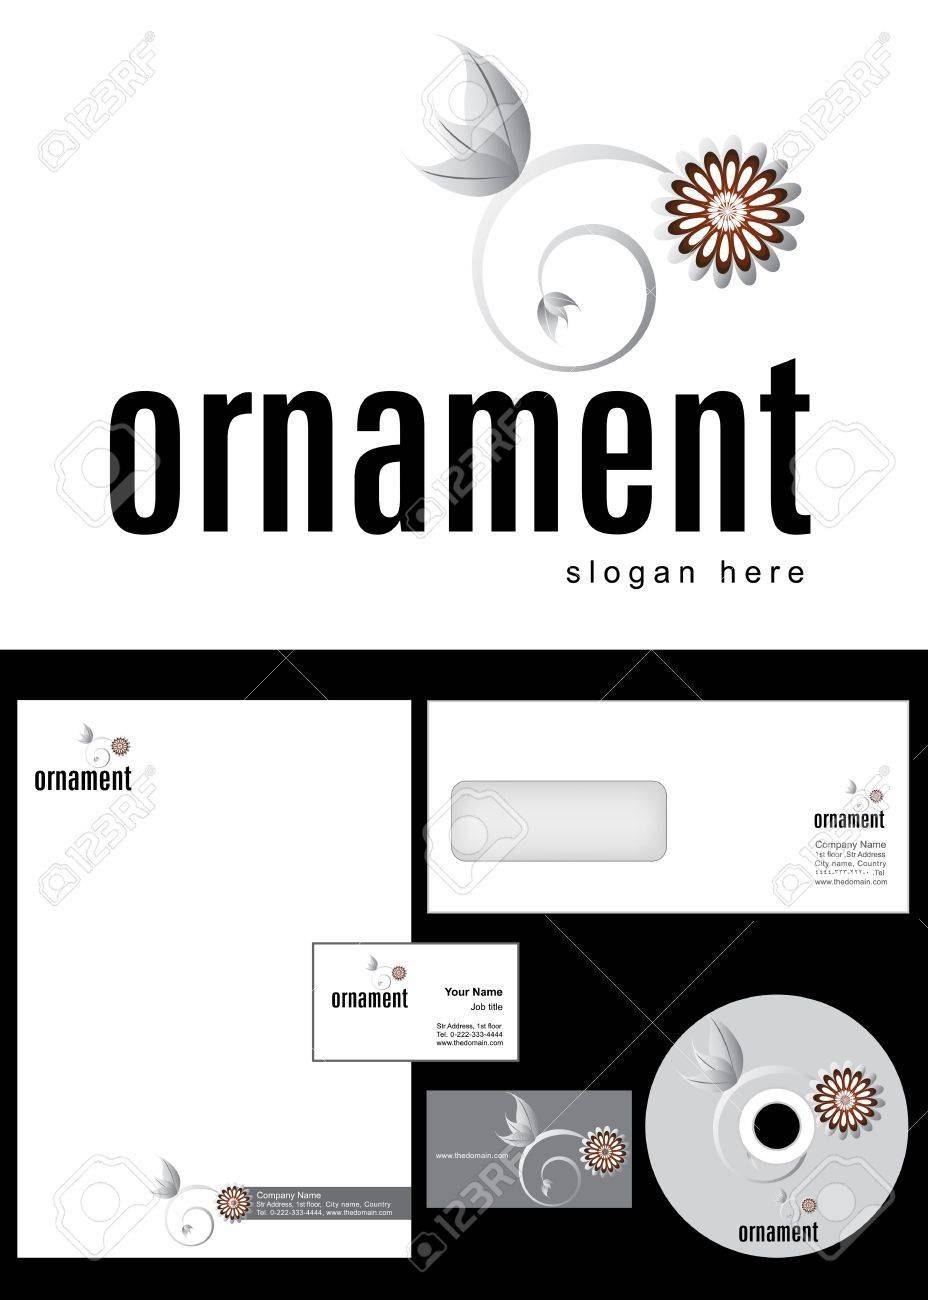 Ornament Logo Design and corporate identity package including logo, letterhead, business card, envelope and cd label. Stock Vector - 12959833